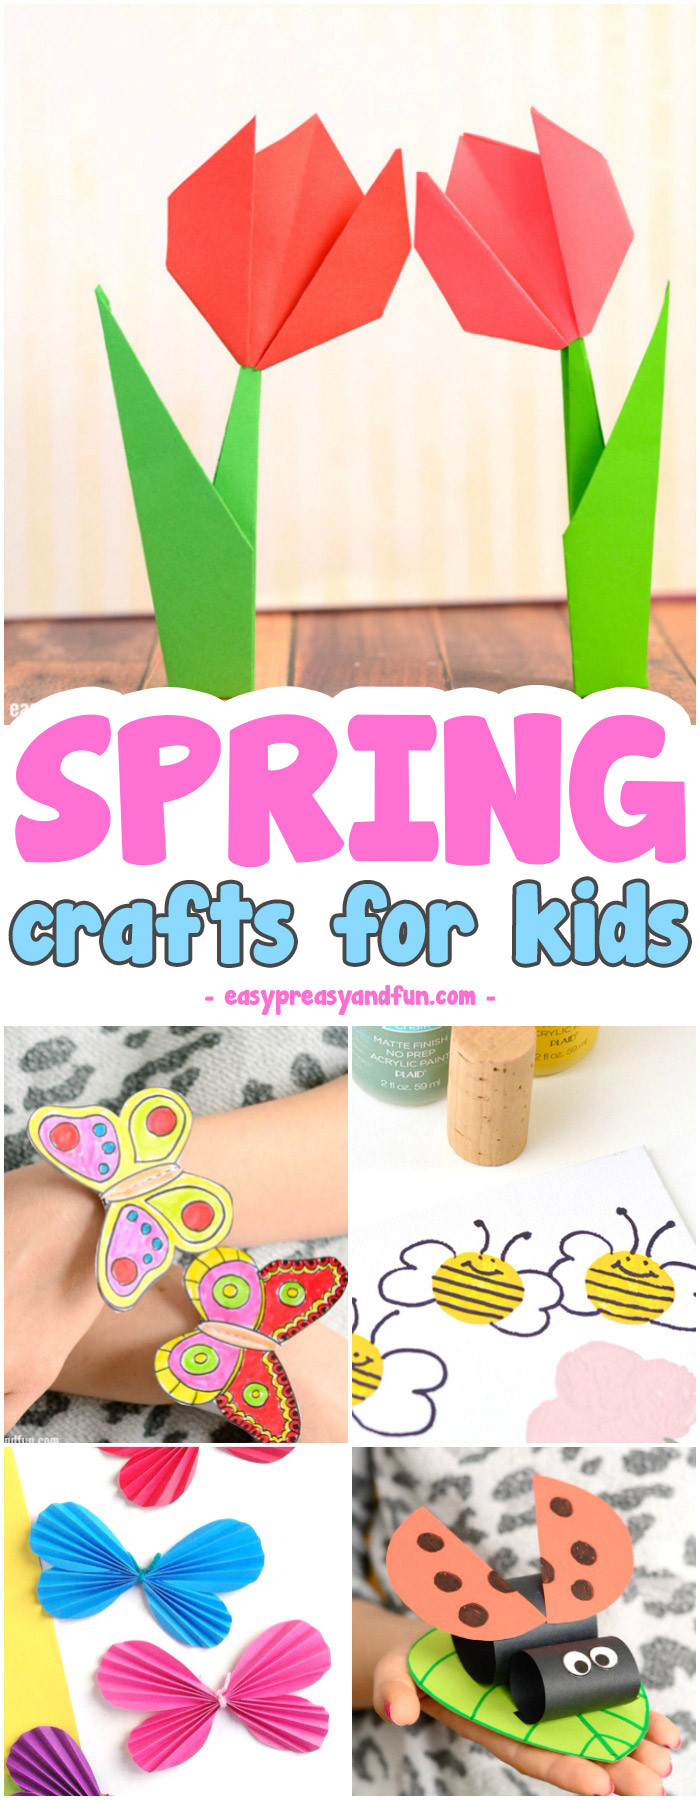 Best ideas about Easy Craft Projects For Kids . Save or Pin Spring Crafts for Kids Art and Craft Project Ideas for Now.